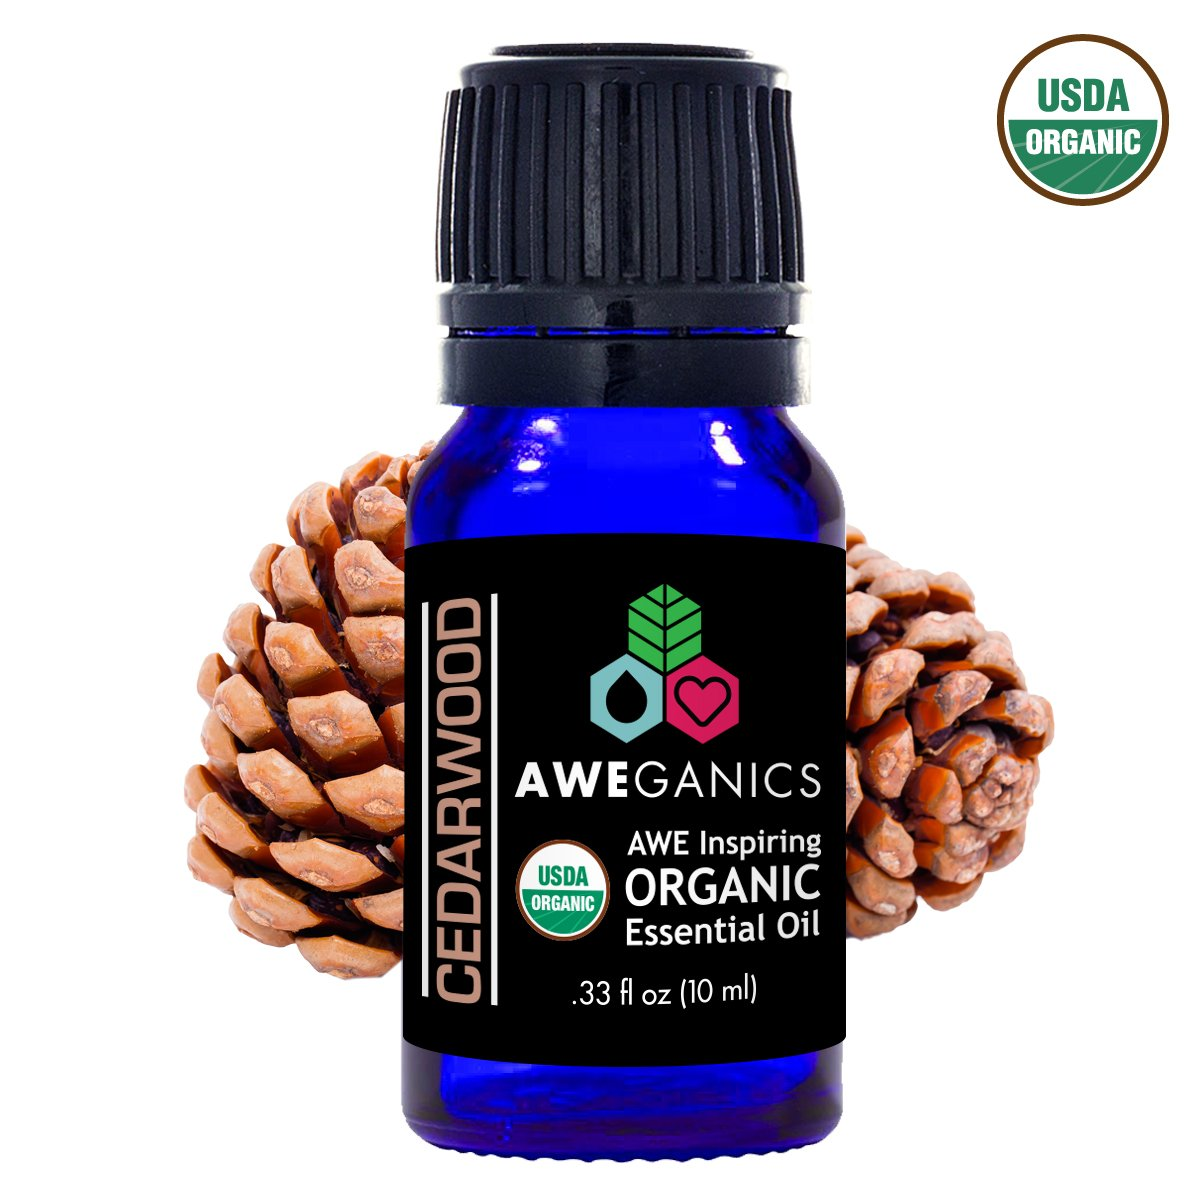 Aweganics Pure Cedarwood Oil, USDA Organic Essential Oils, 100% Pure Natural Premium Therapeutic Grade, Best Aromatherapy Scented-Oils for Diffuser, Home, Office, Personal Use - 10 ML - MSRP $14.99